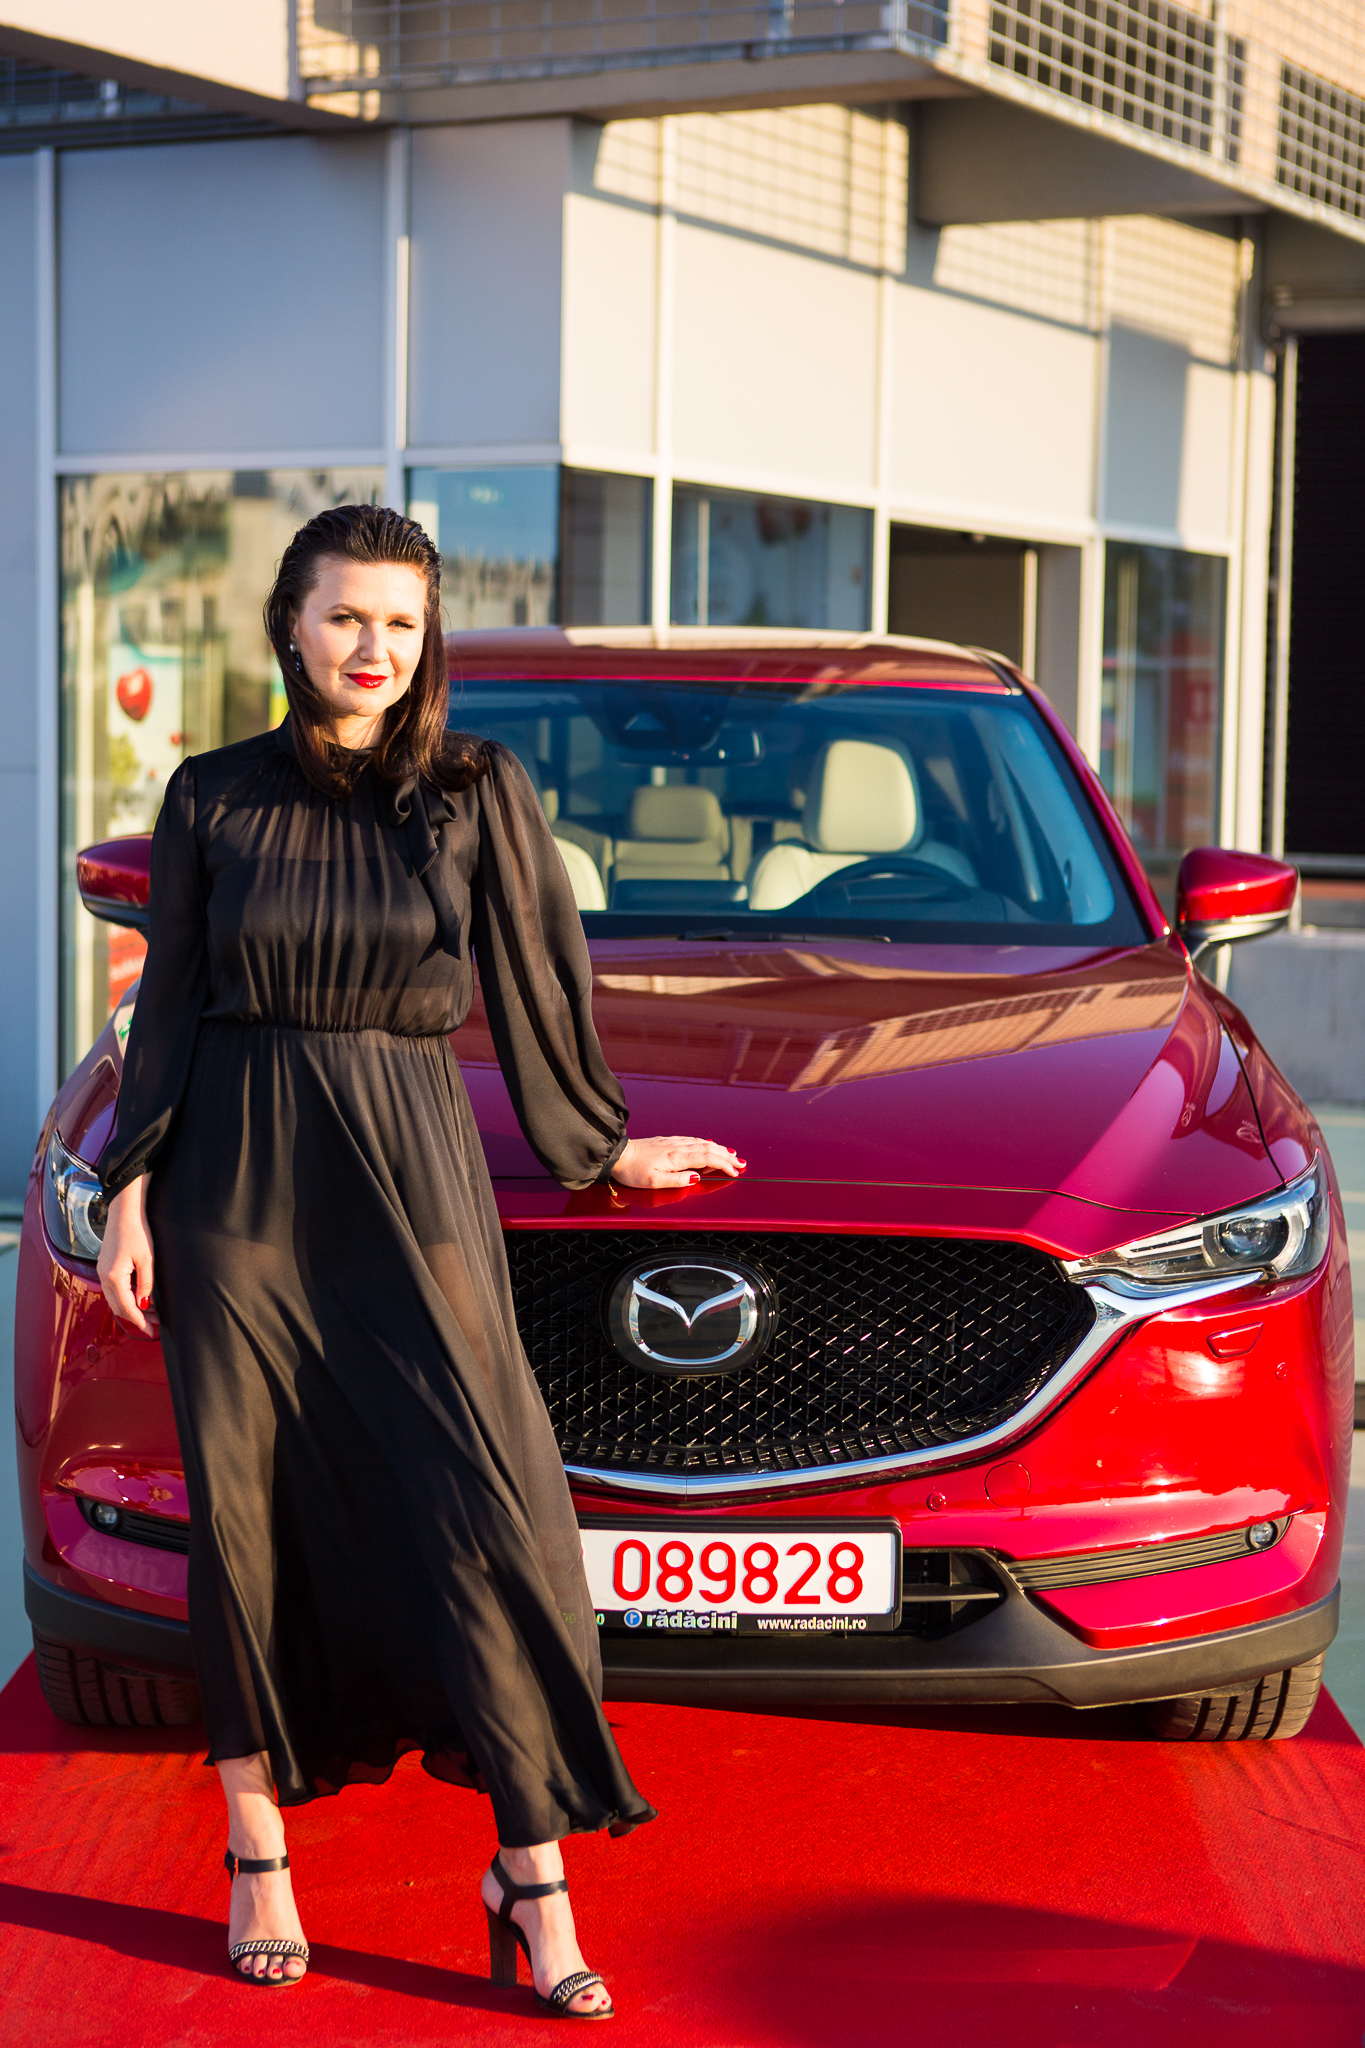 unica-rooftop-party-raluca-hagiu-mazda-red.